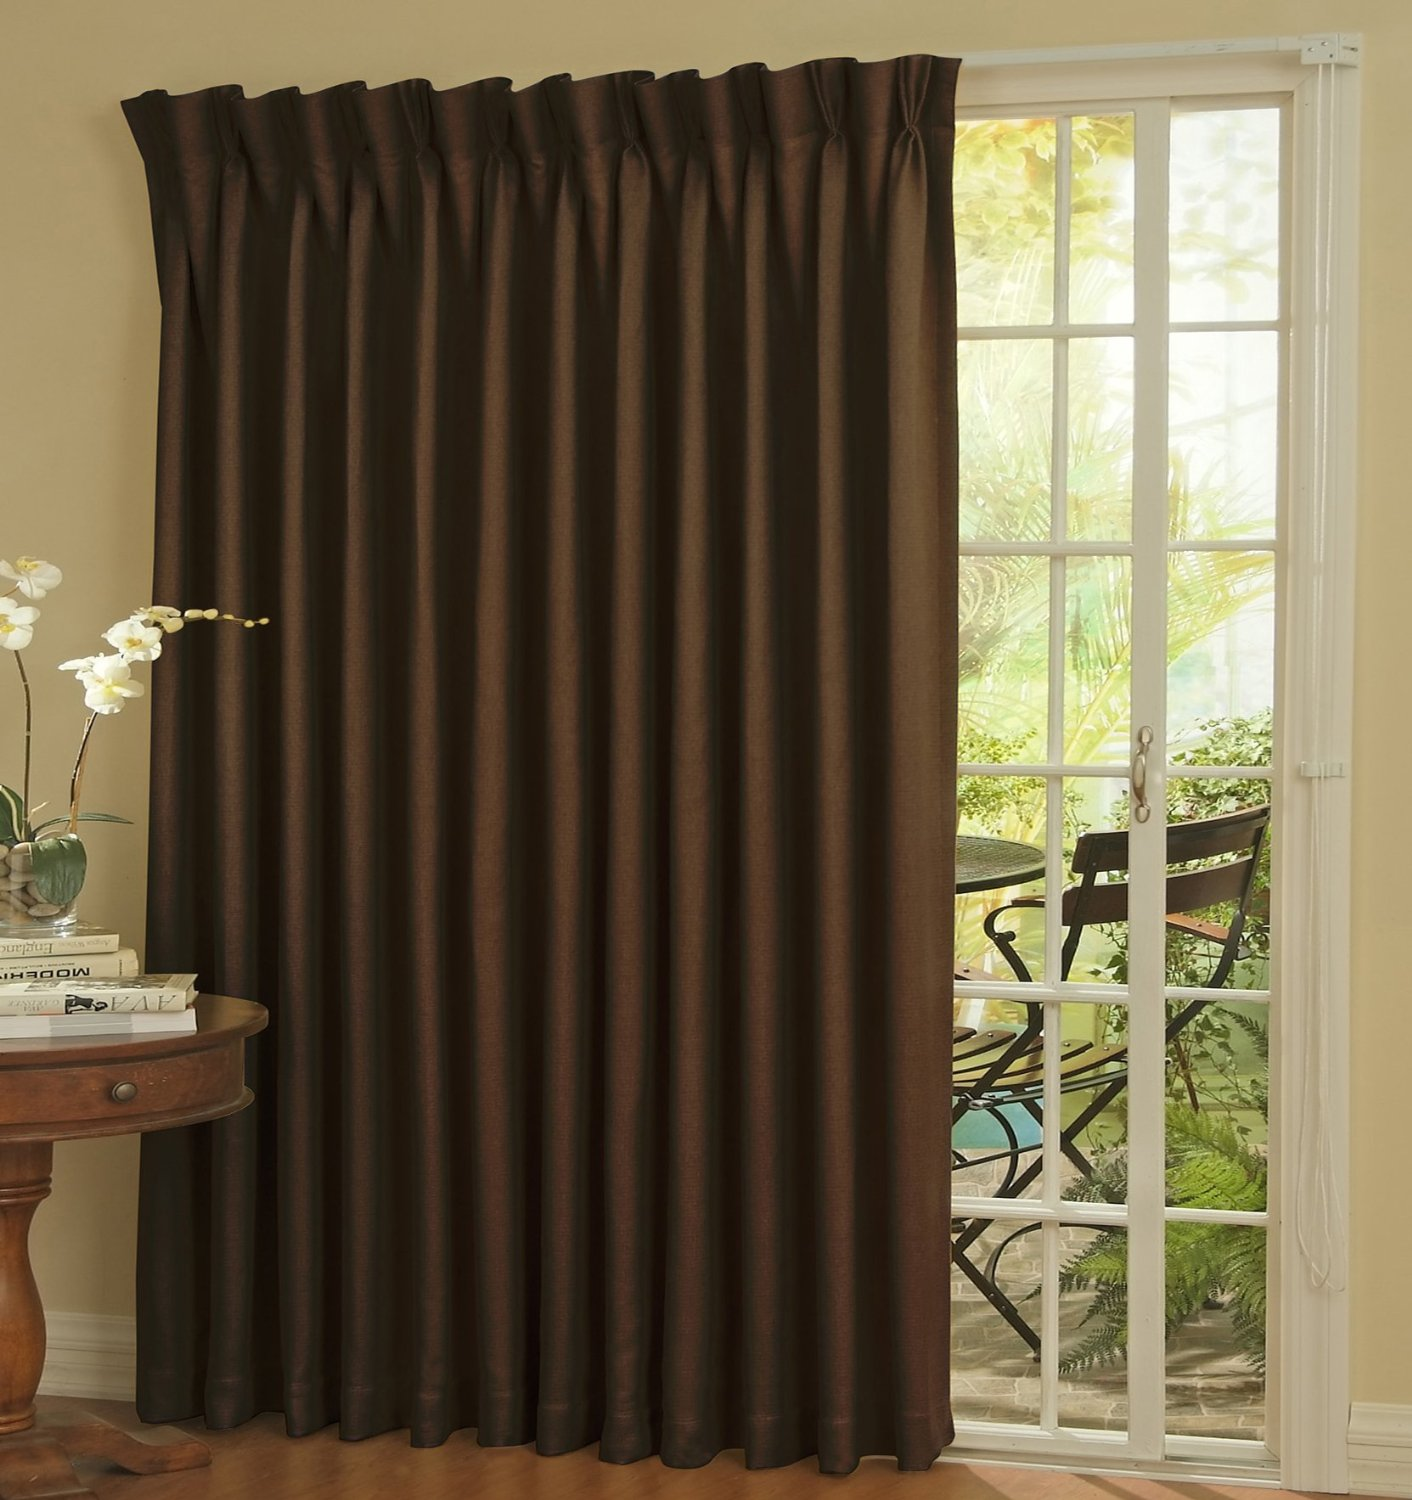 interior-long-dark-brown-fabric-curtain-for-sliding-glass-door-having-white-wooden-bars-on-it-placed-on-the-cream-wall-curtains-for-sliding-glass-door